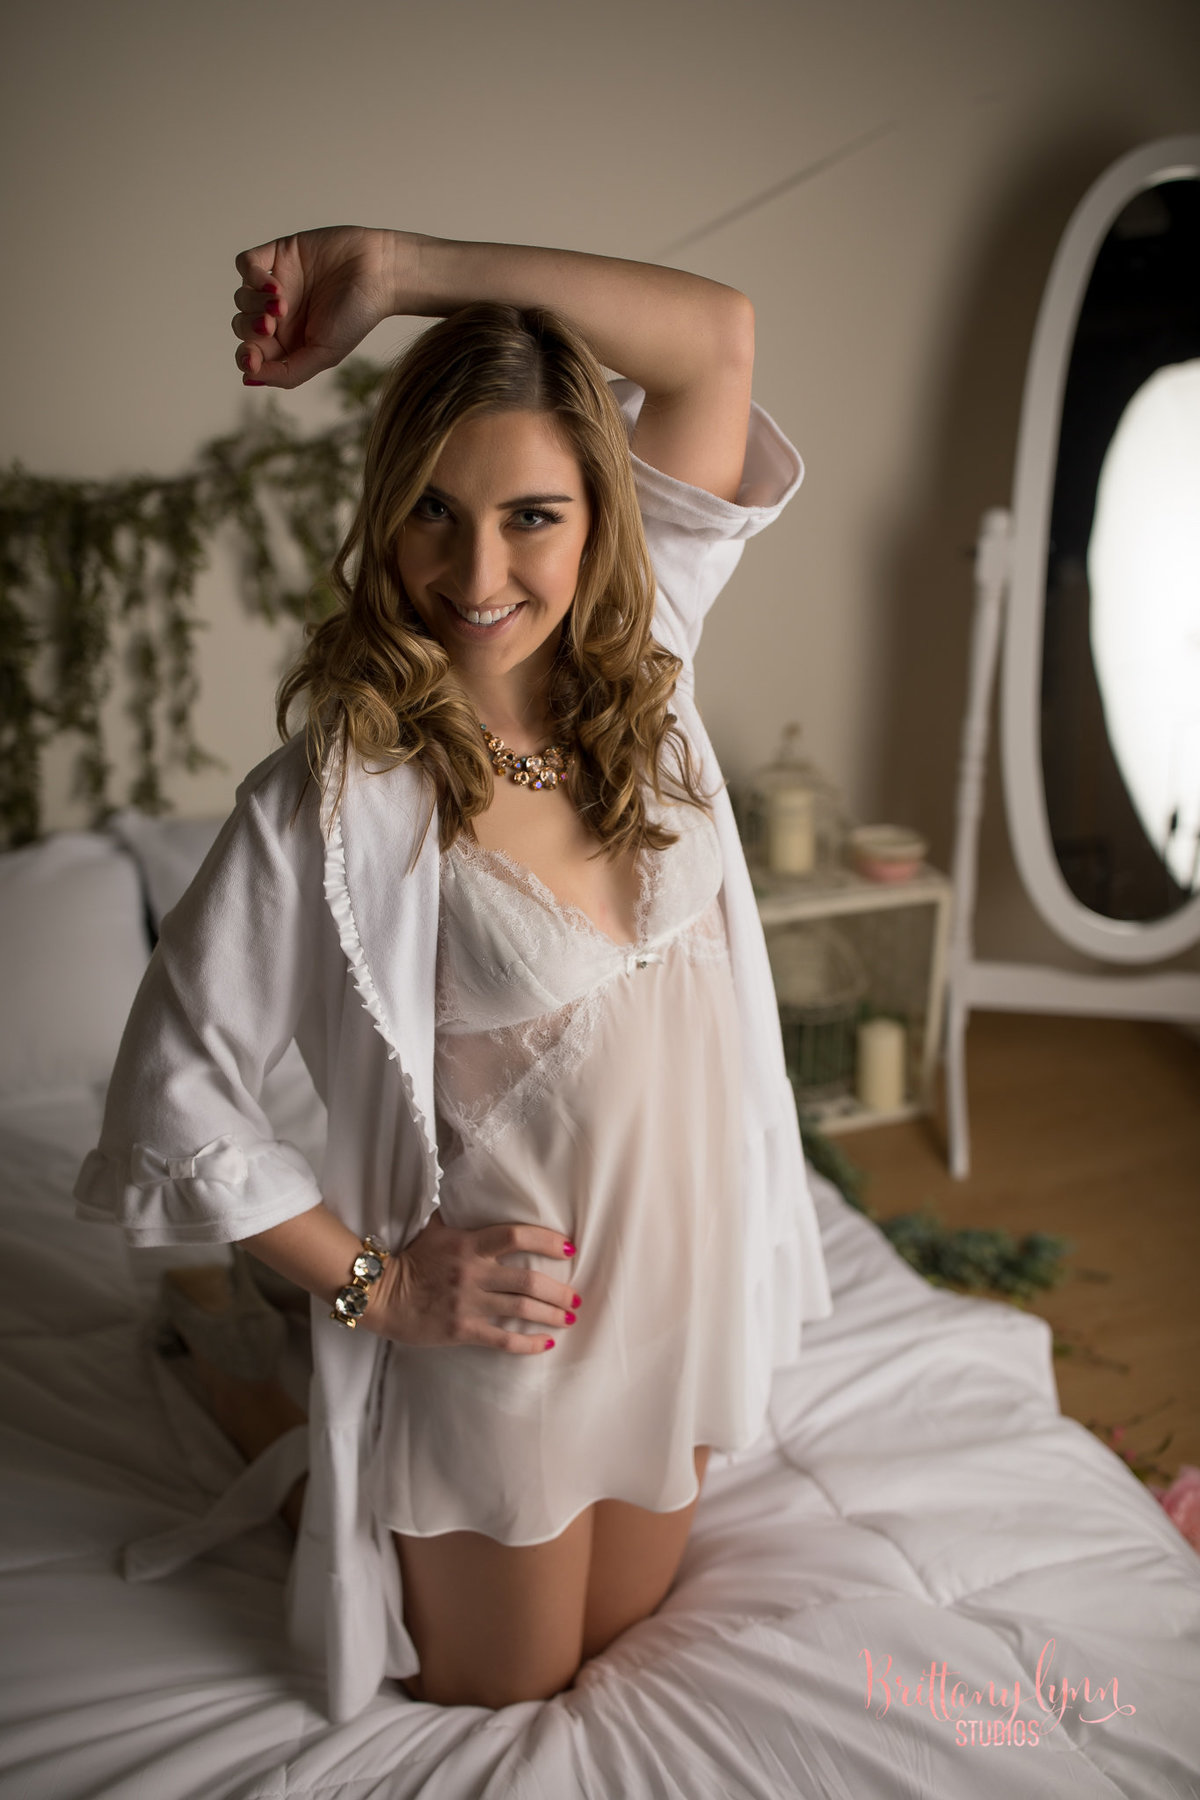 chicago boudoir photographer (43 of 66)